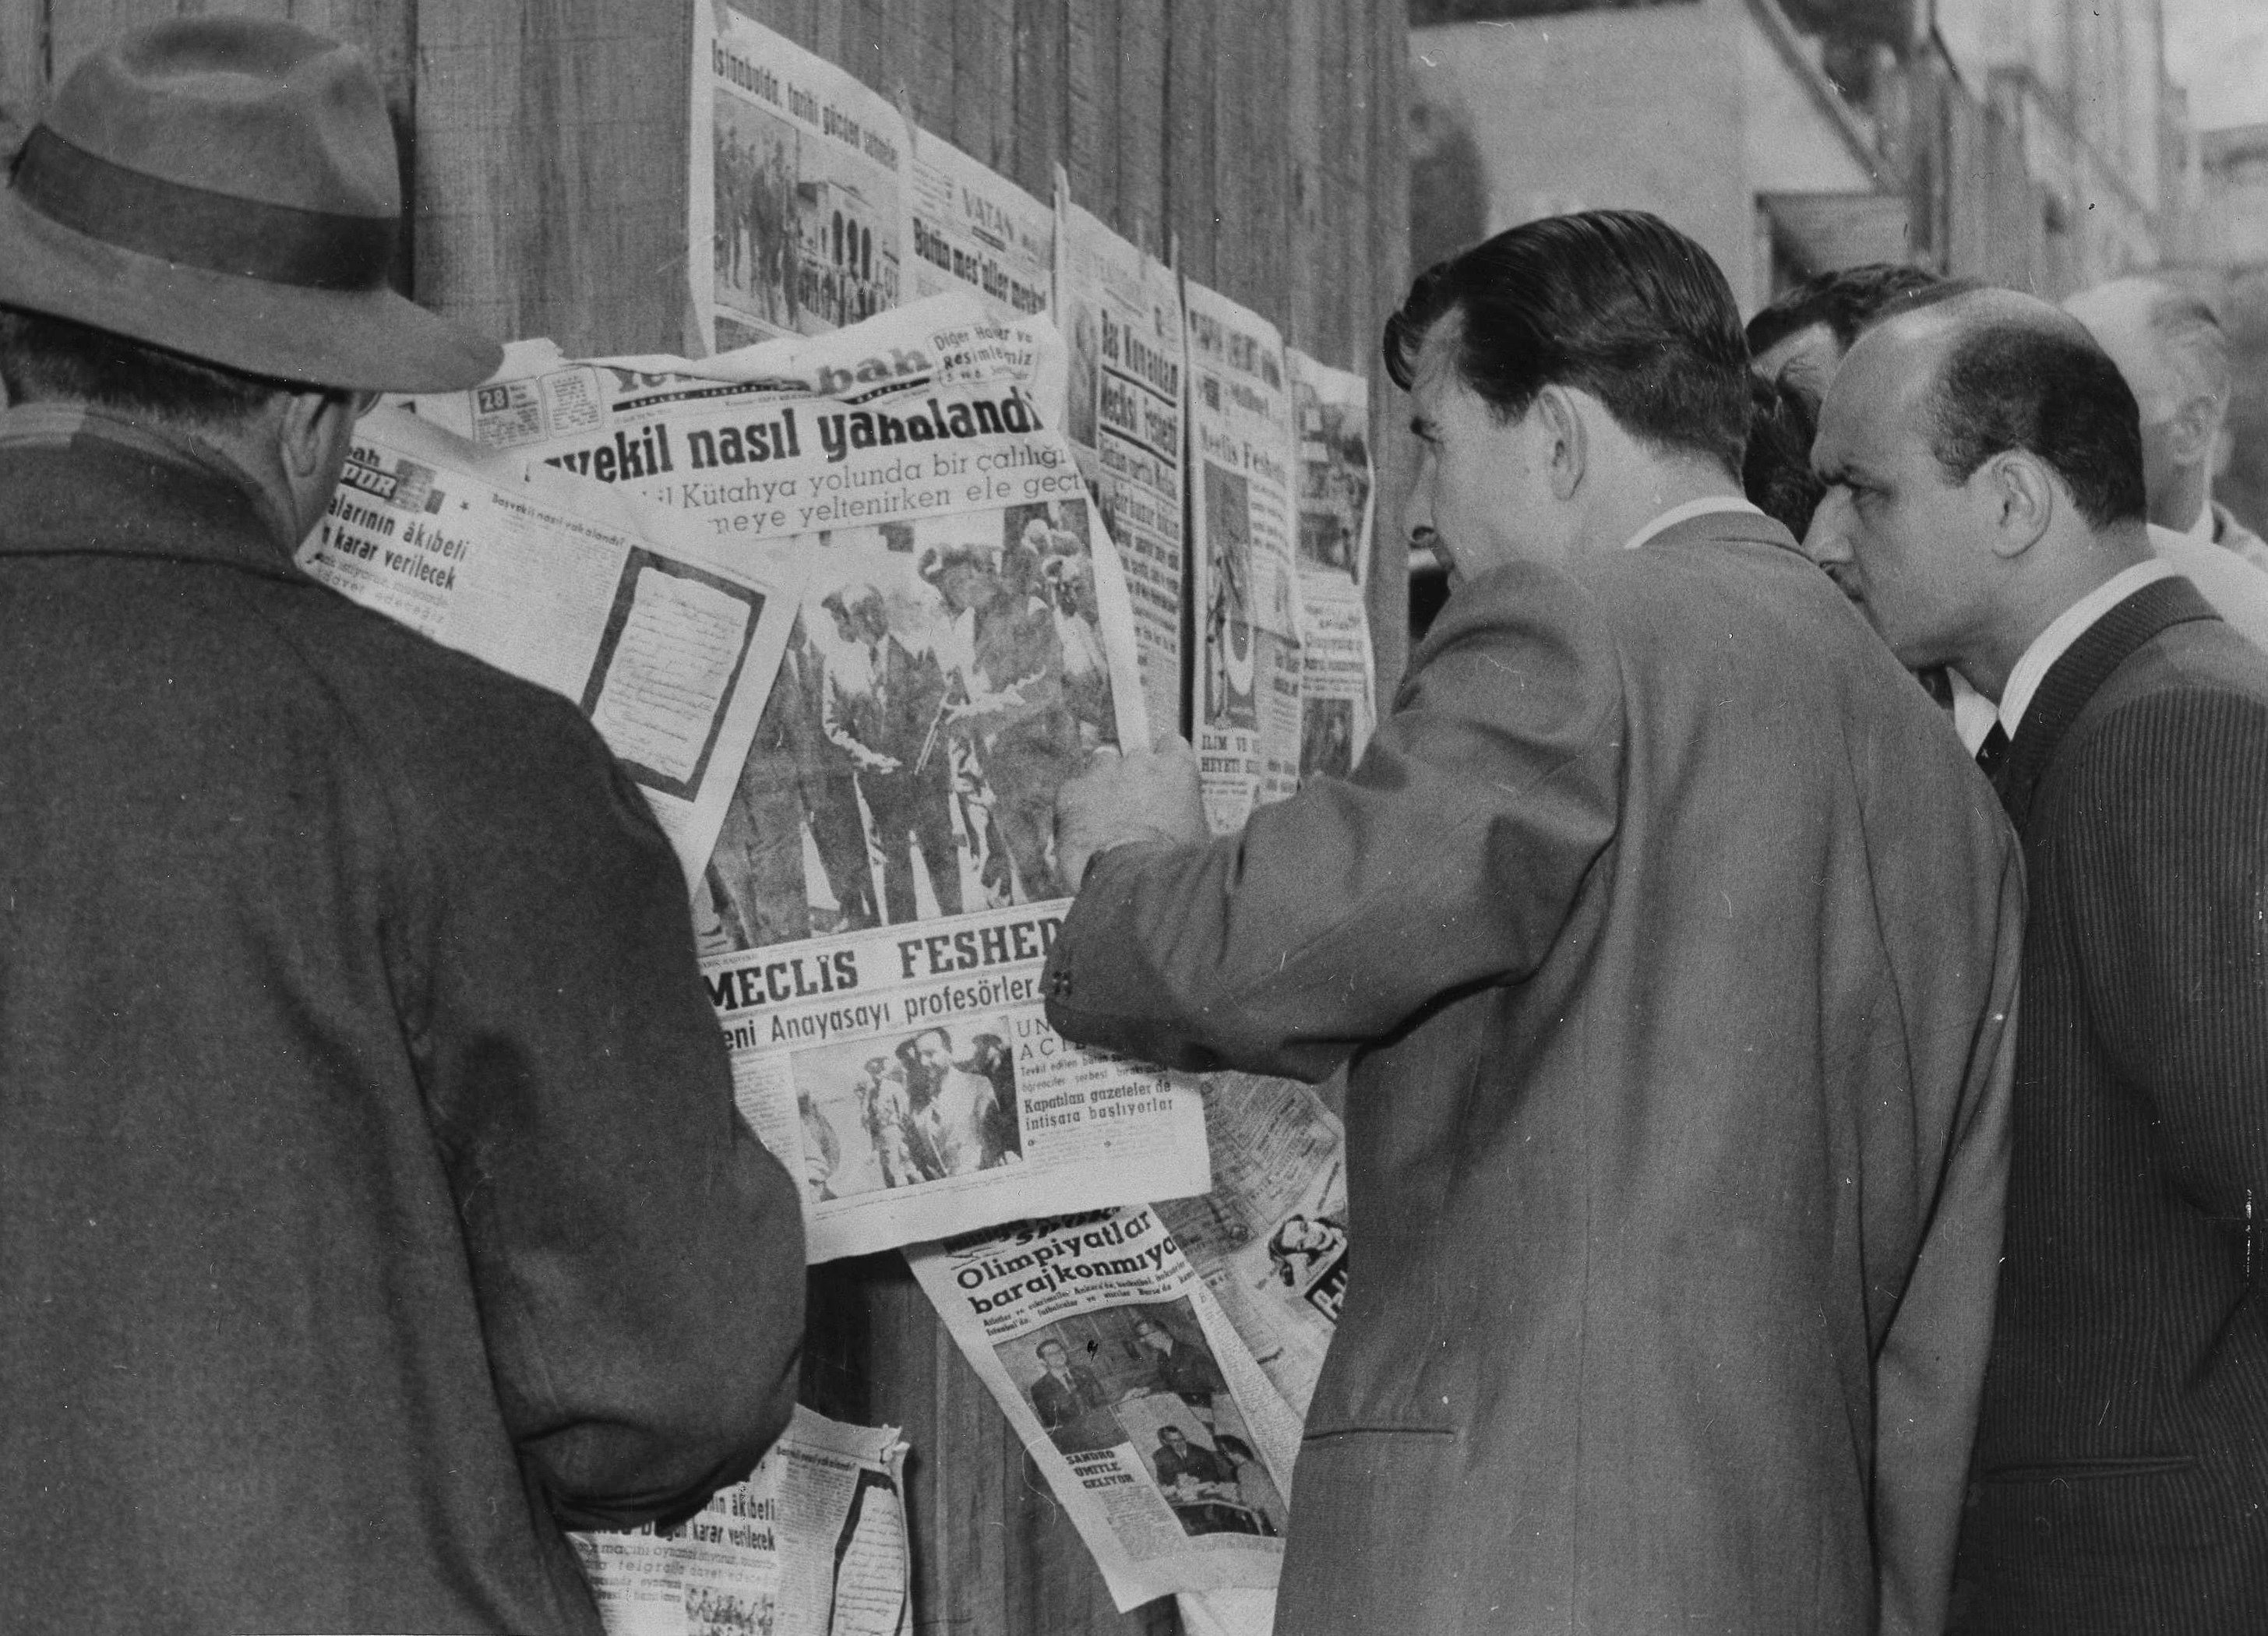 Citizens stand near a newsstand featuring newspapers announcing the arrest of Prime Minister Adnan Menderes after a military coup, in Istanbul, Turkey, May 28, 1960. (AP Photo)